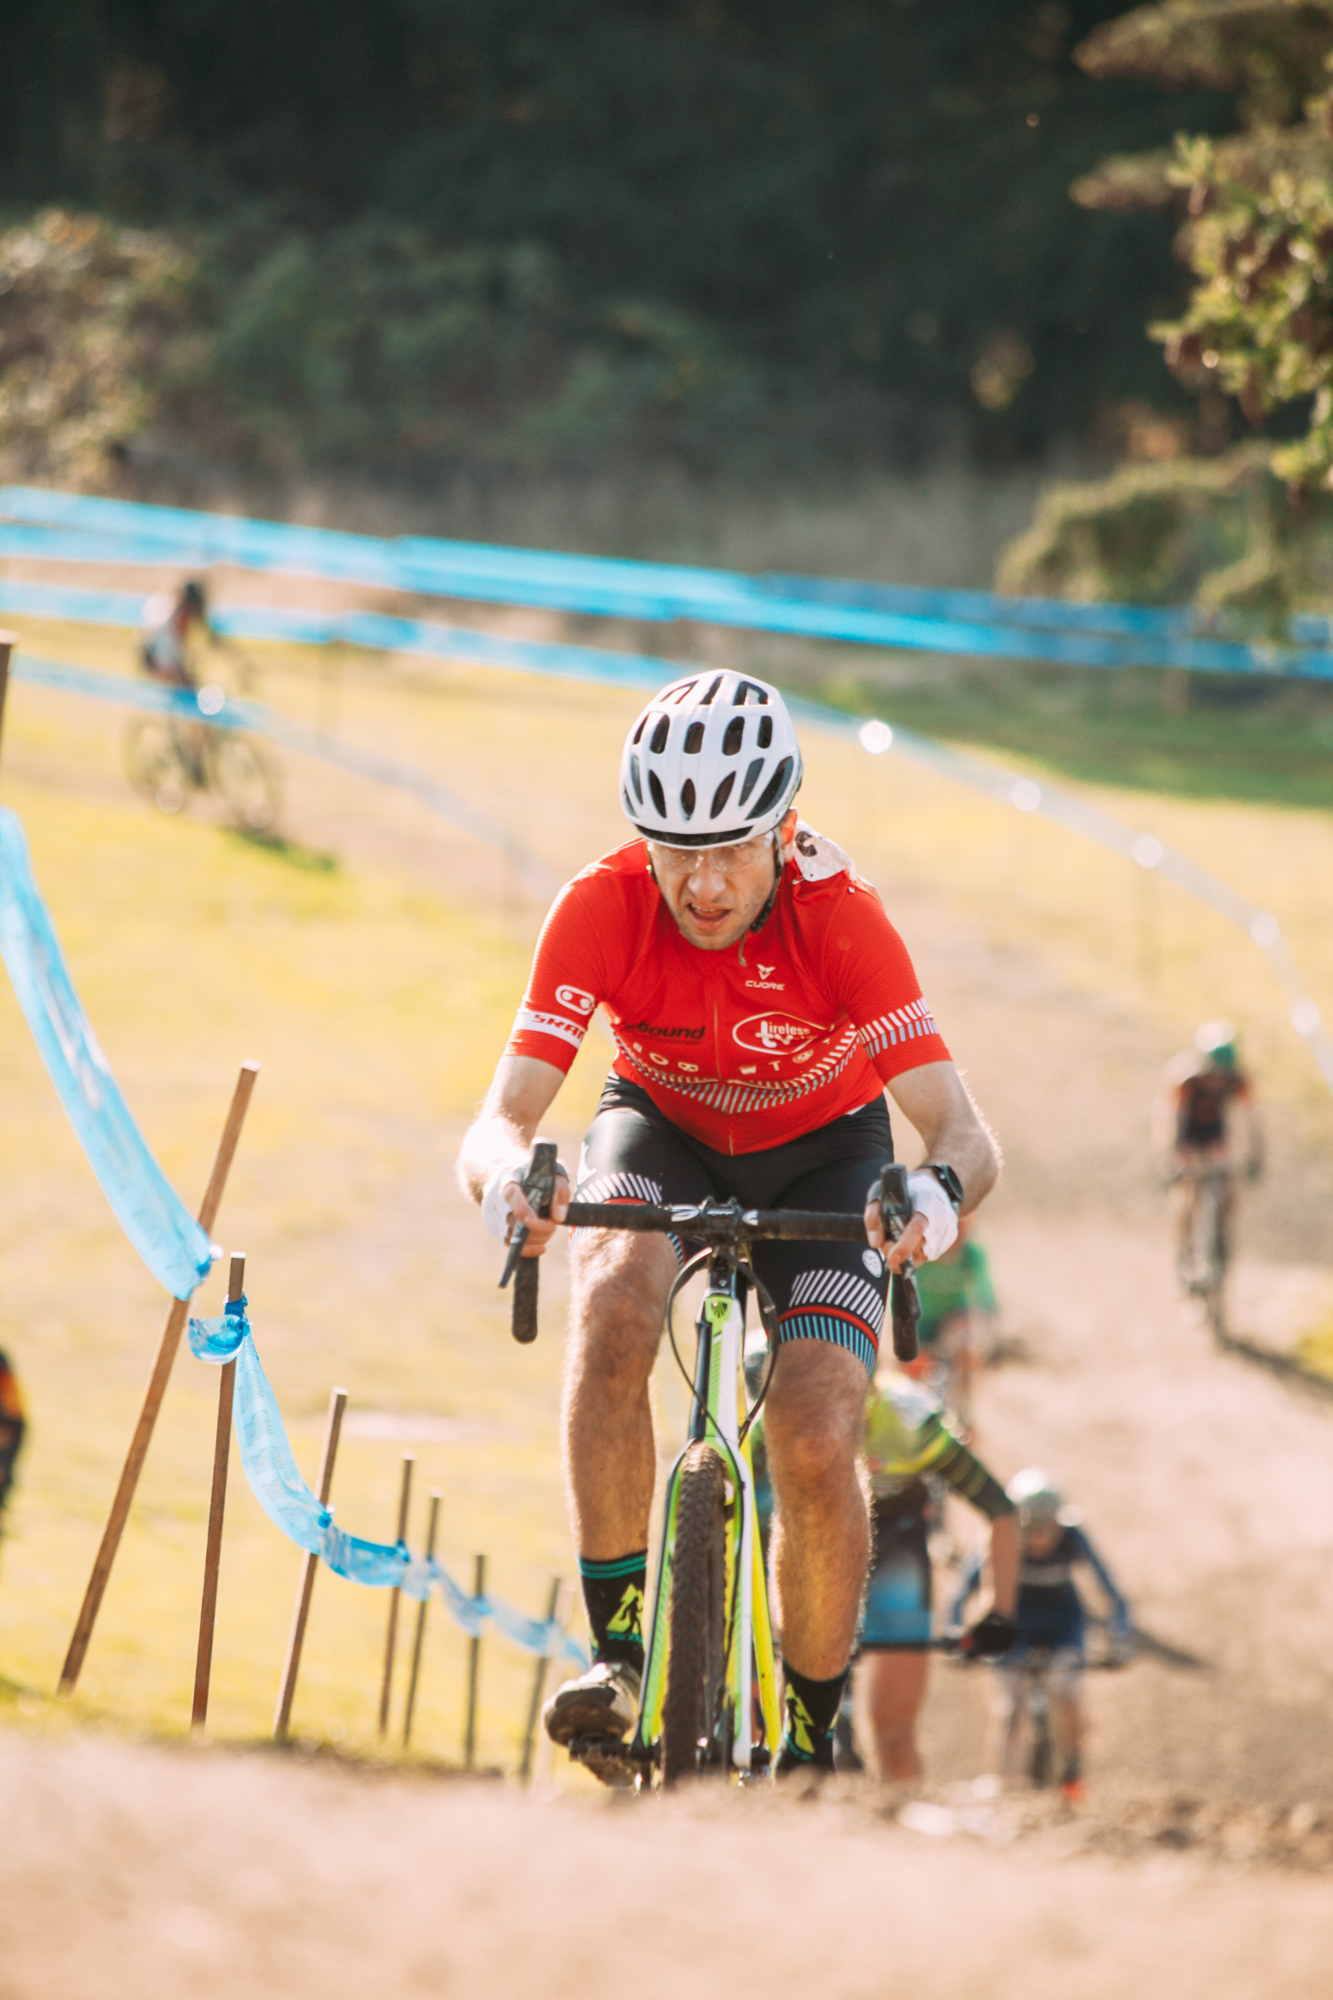 Cyclocross18_CCCX_RainierHS-214-mettlecycling.jpg